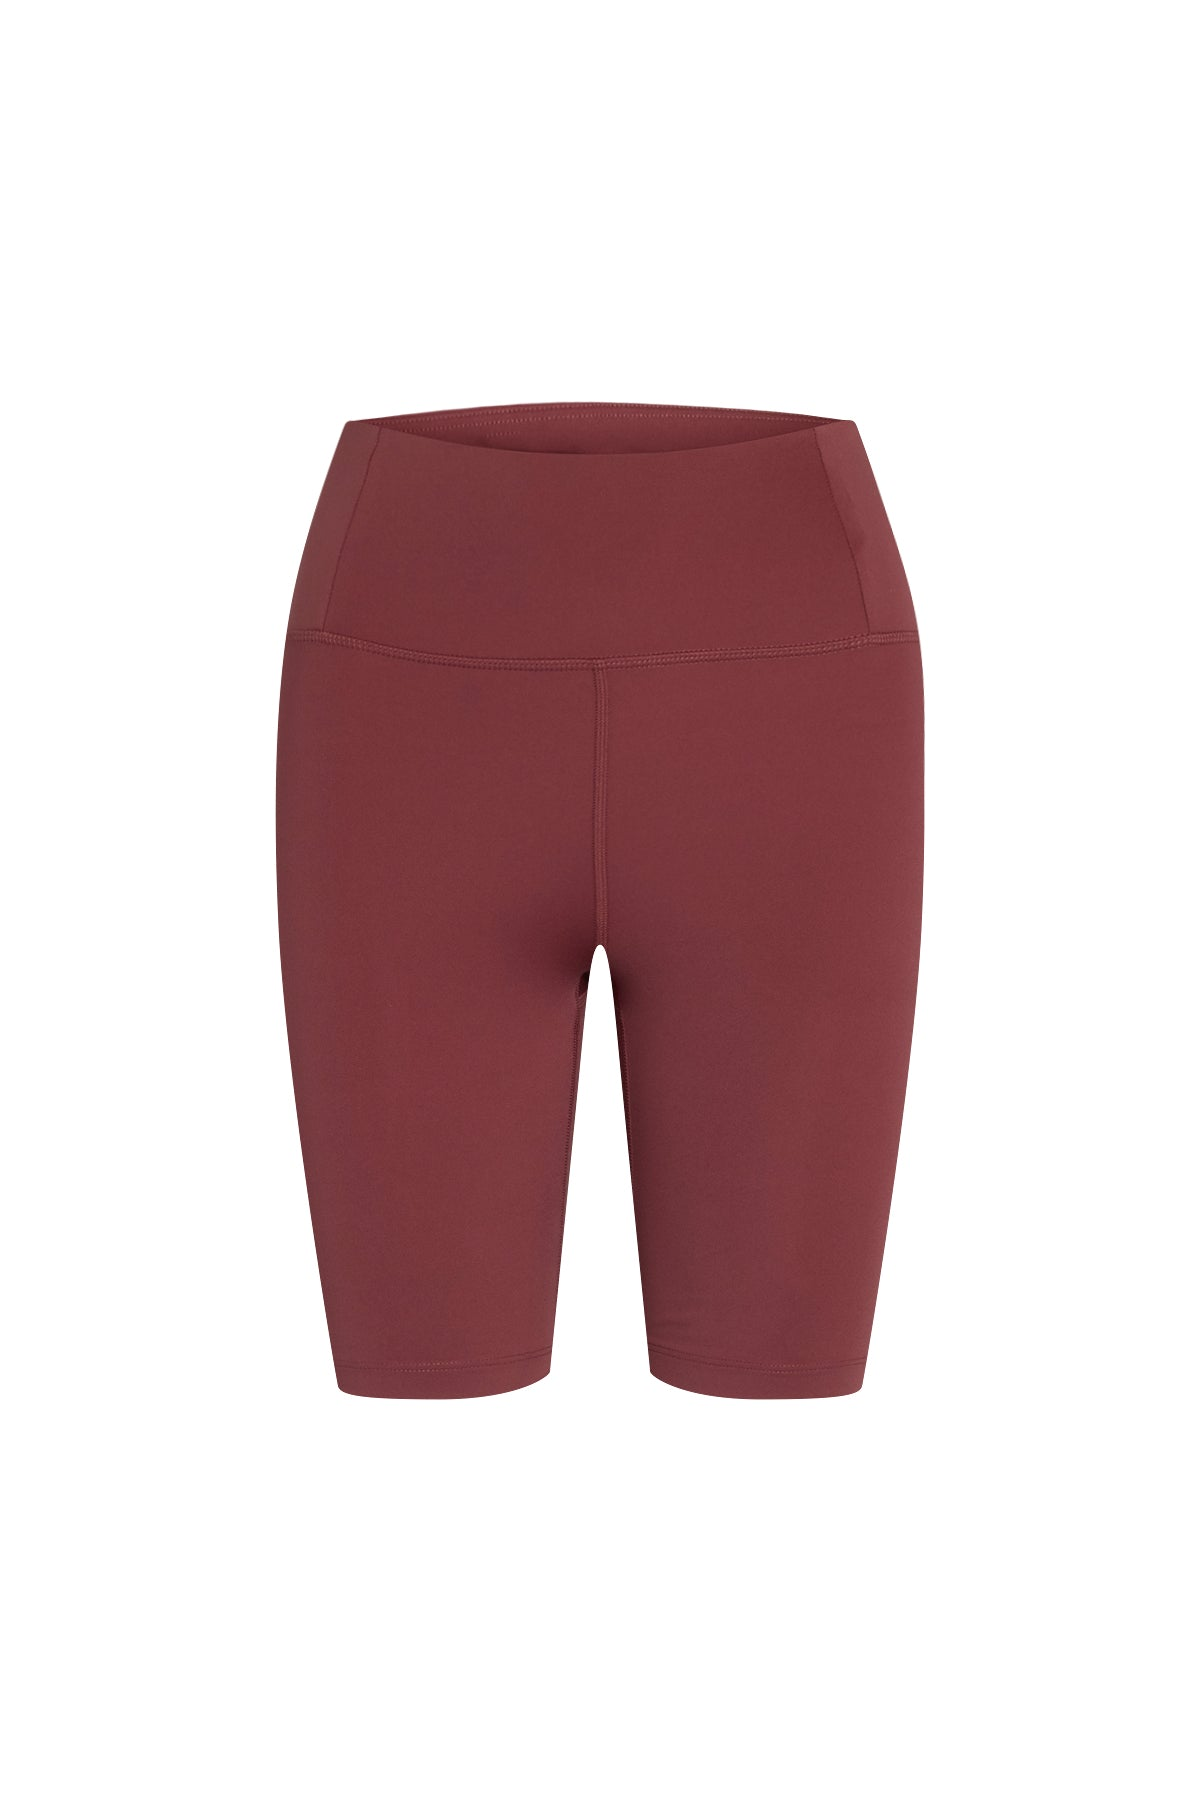 Image of FLOAT Seamless Shorts - Fig